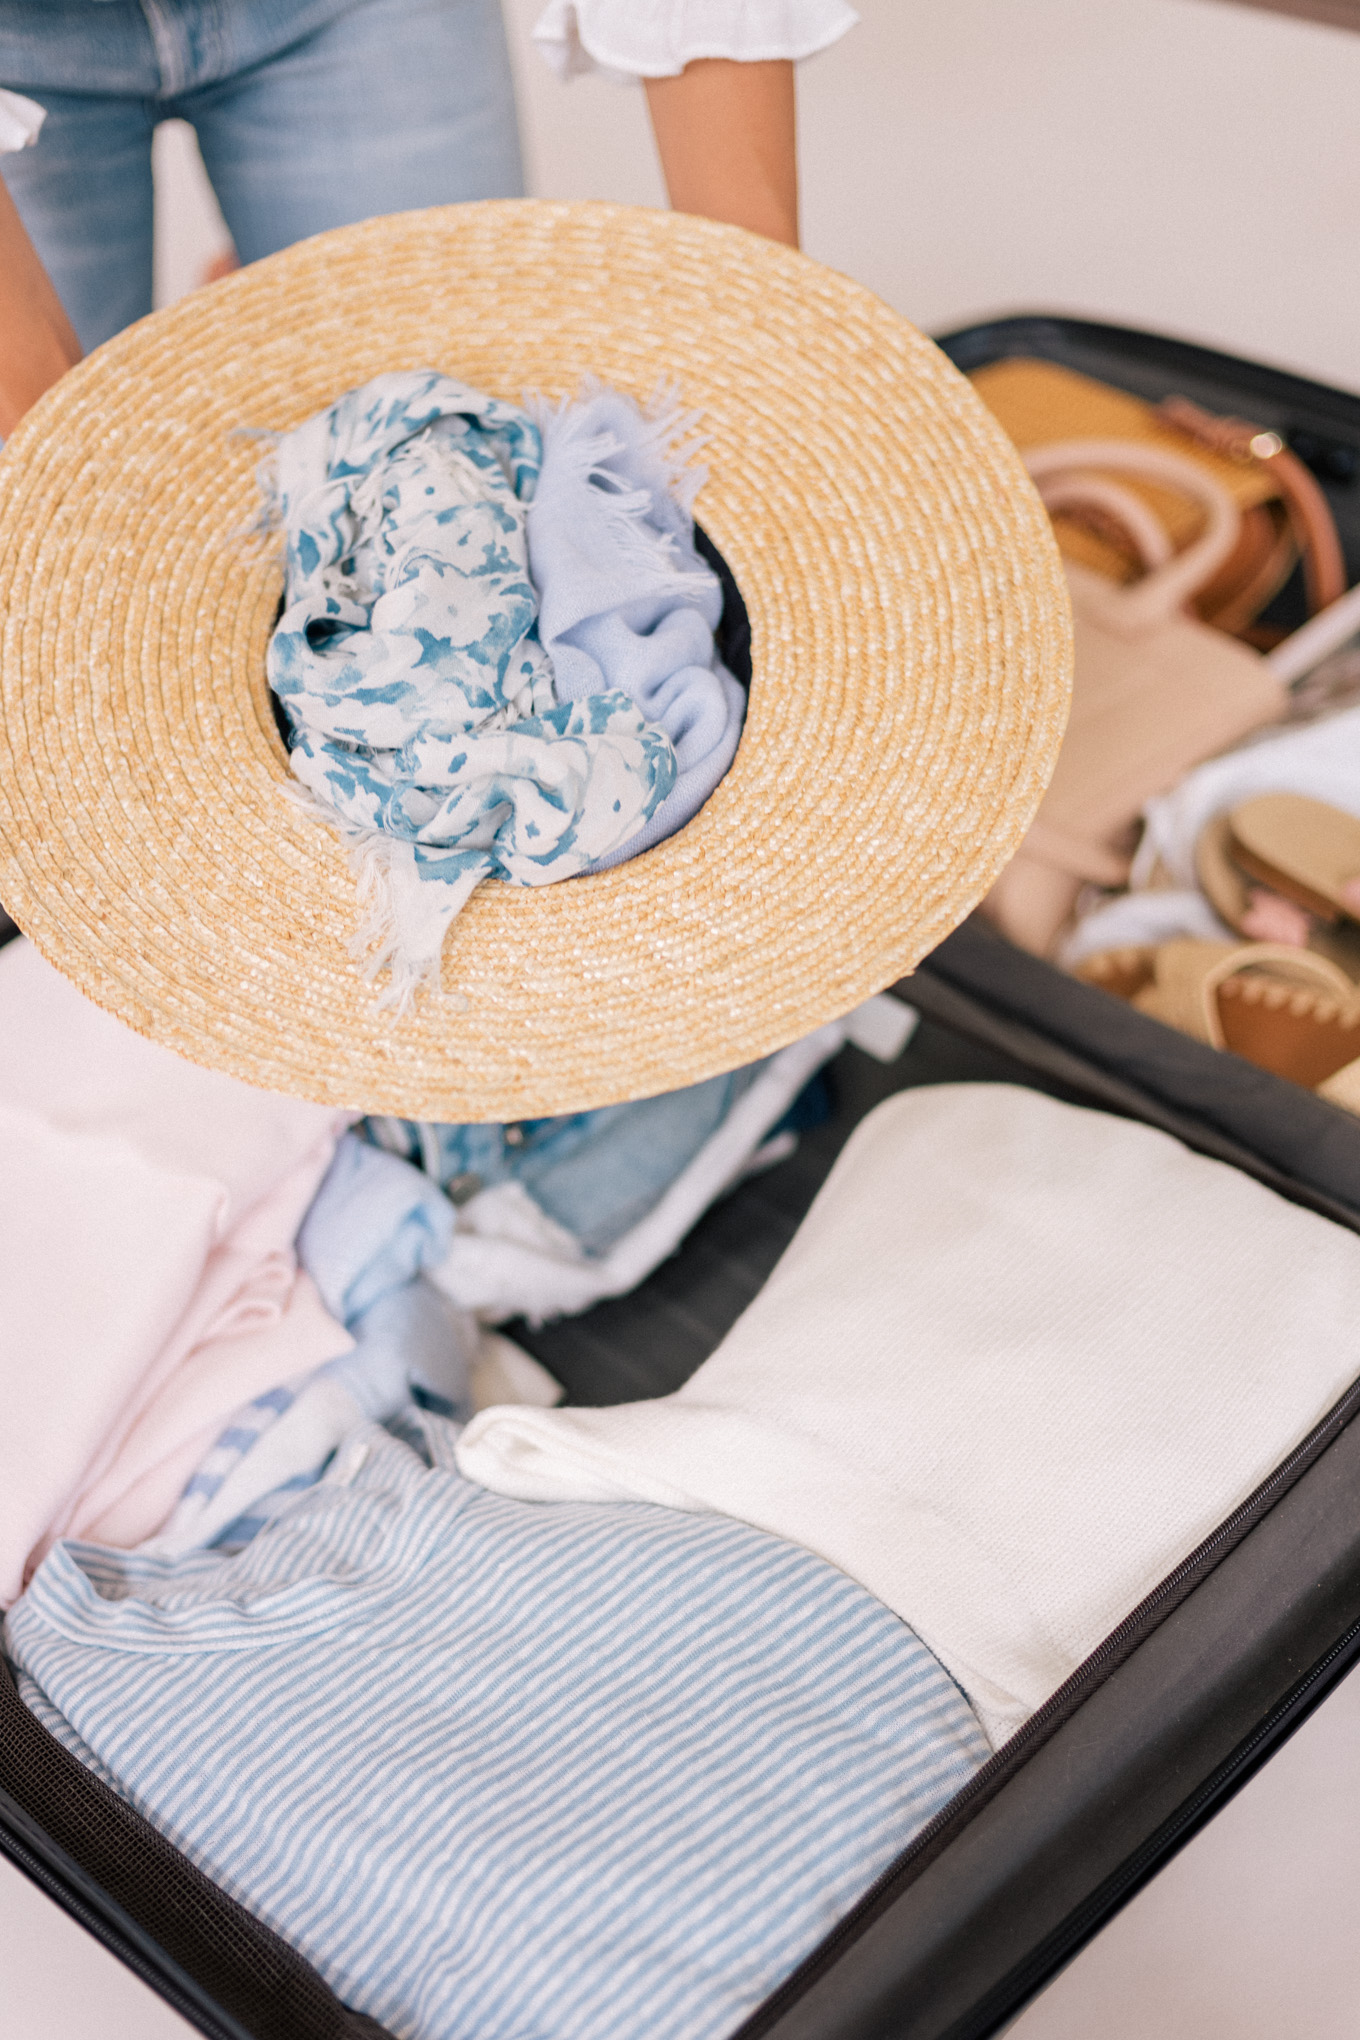 gmg-how-i-pack-my-suitcases-1003921